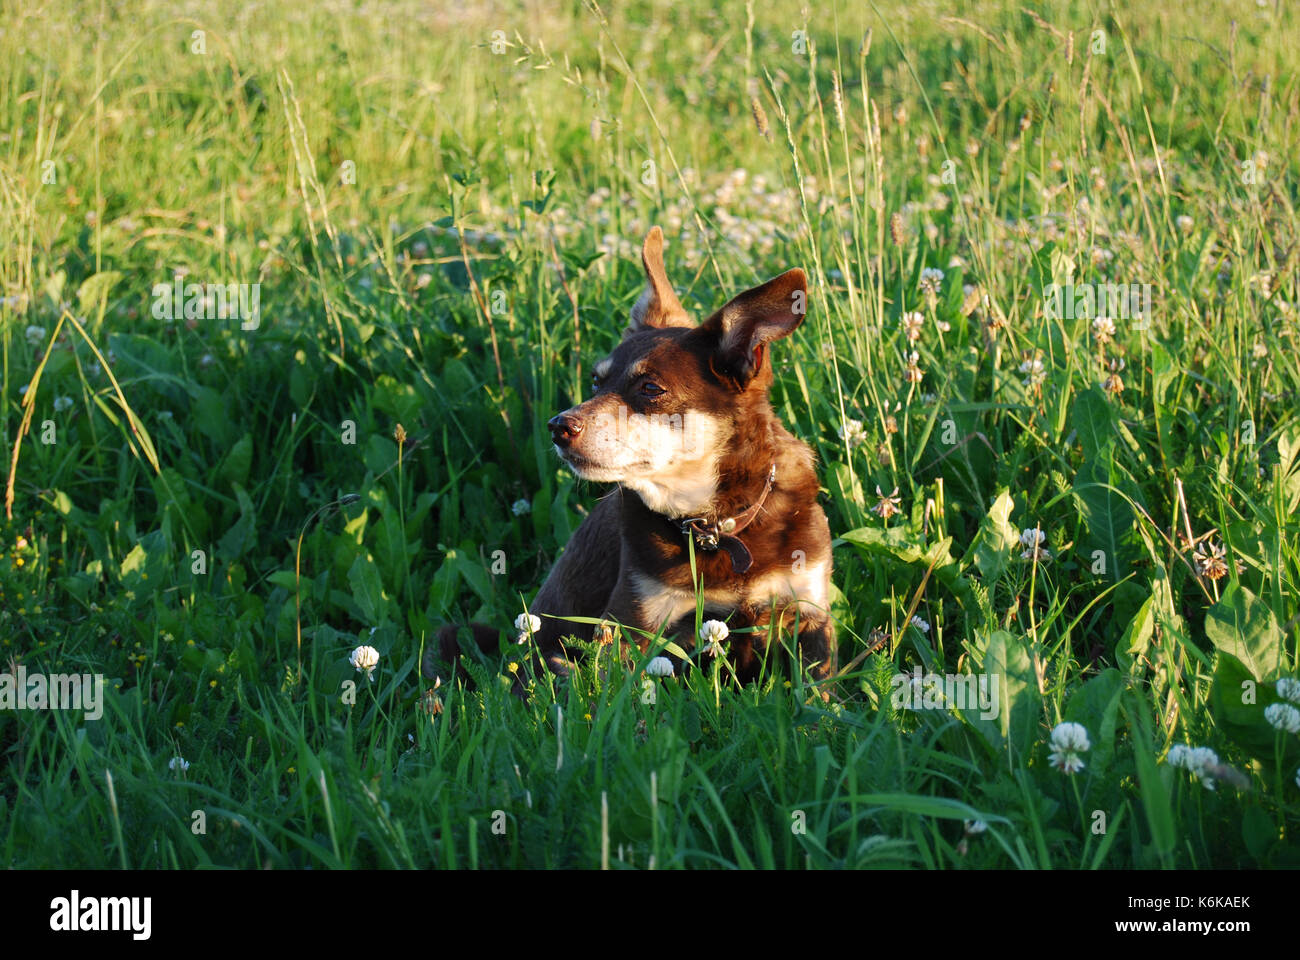 Small brown dog sitting in a meadow - Stock Image